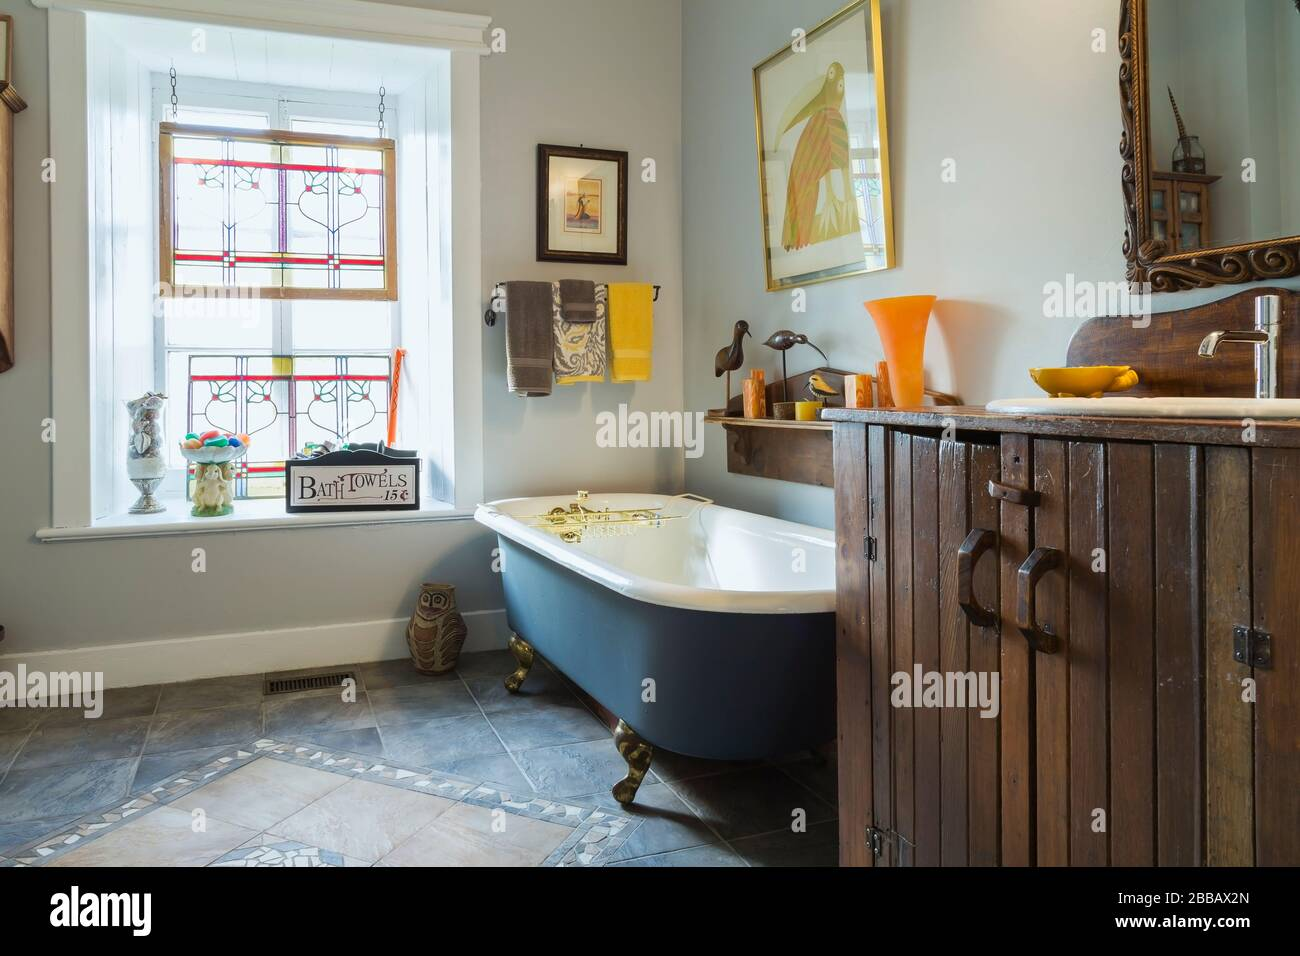 https www alamy com main bathroom with freestanding claw foot bathtub ceramic tile floor and window decorated with suspended stained glass frames inside an old circa 1830 quebecois style country home quebec canada this image is property released cupr0357 image351208557 html